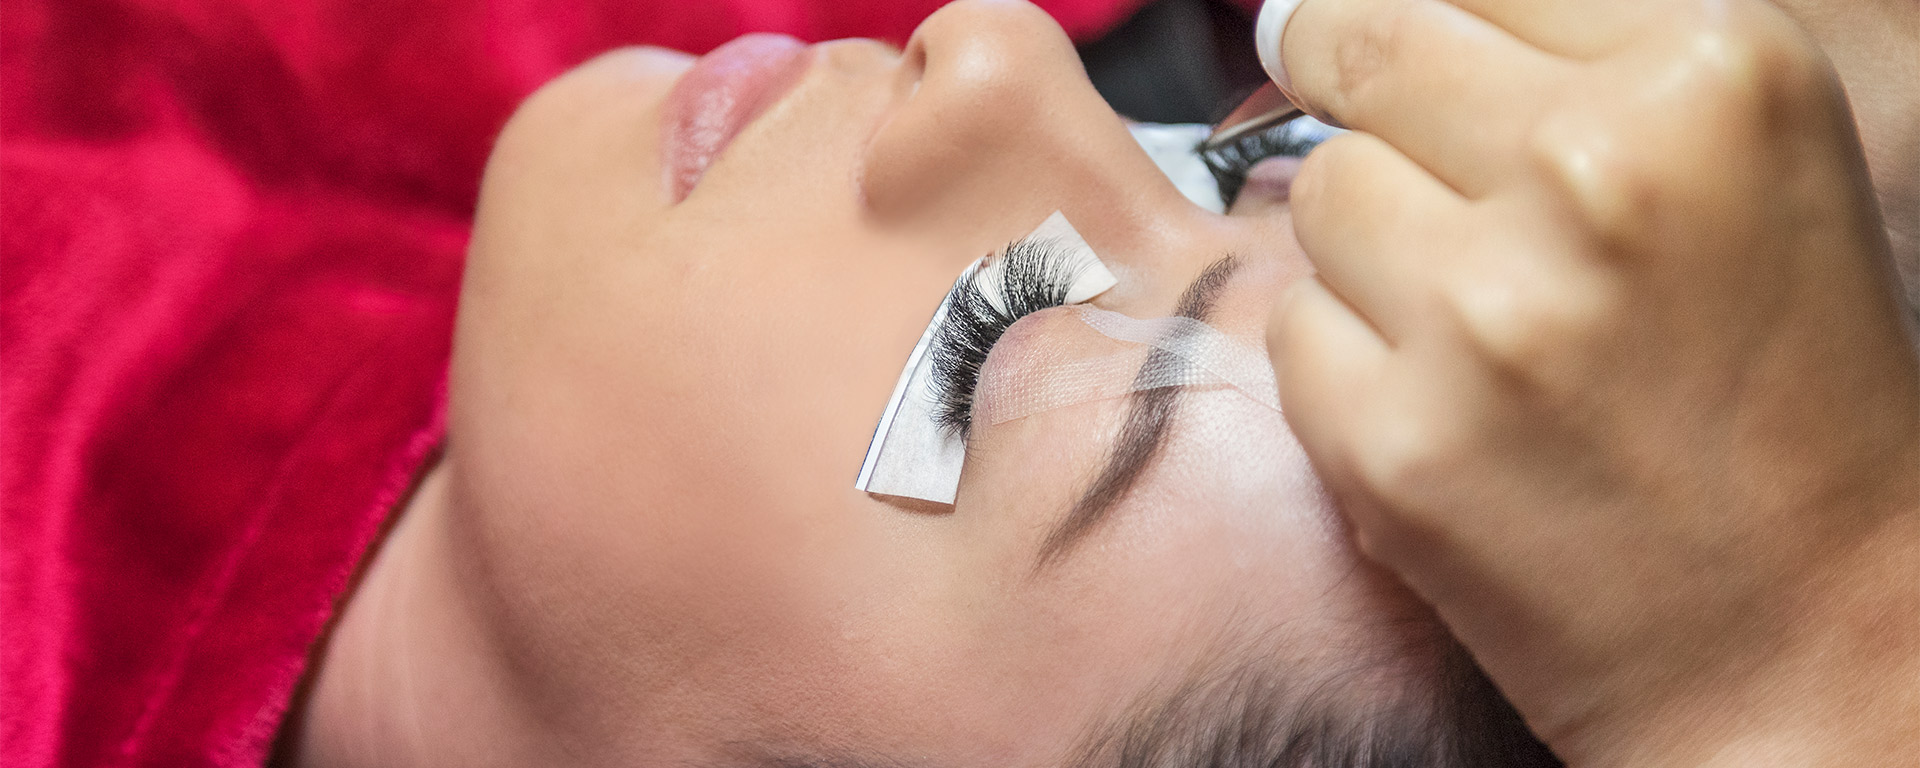 Guest relaxes with eyes closed while stylist applies eyelash extensions